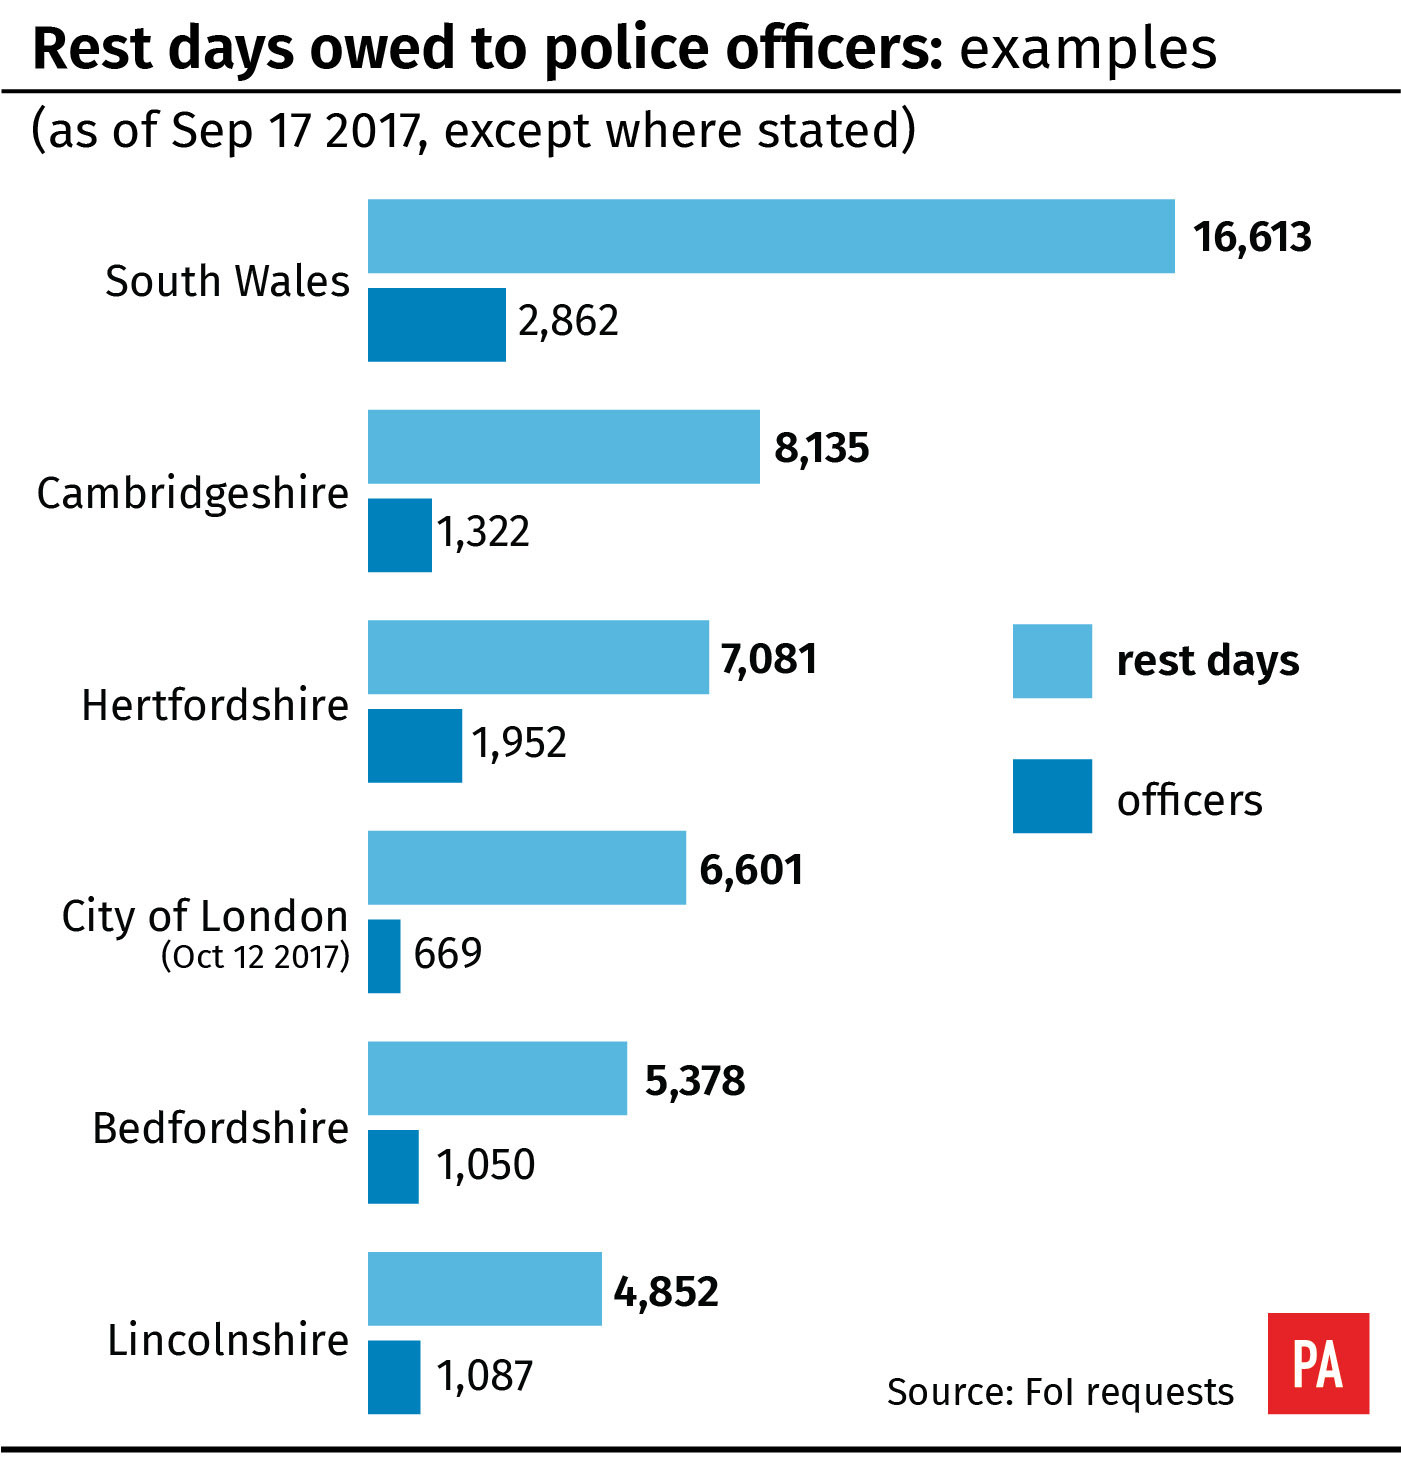 Rest days owed to police officers (PA Graphics)